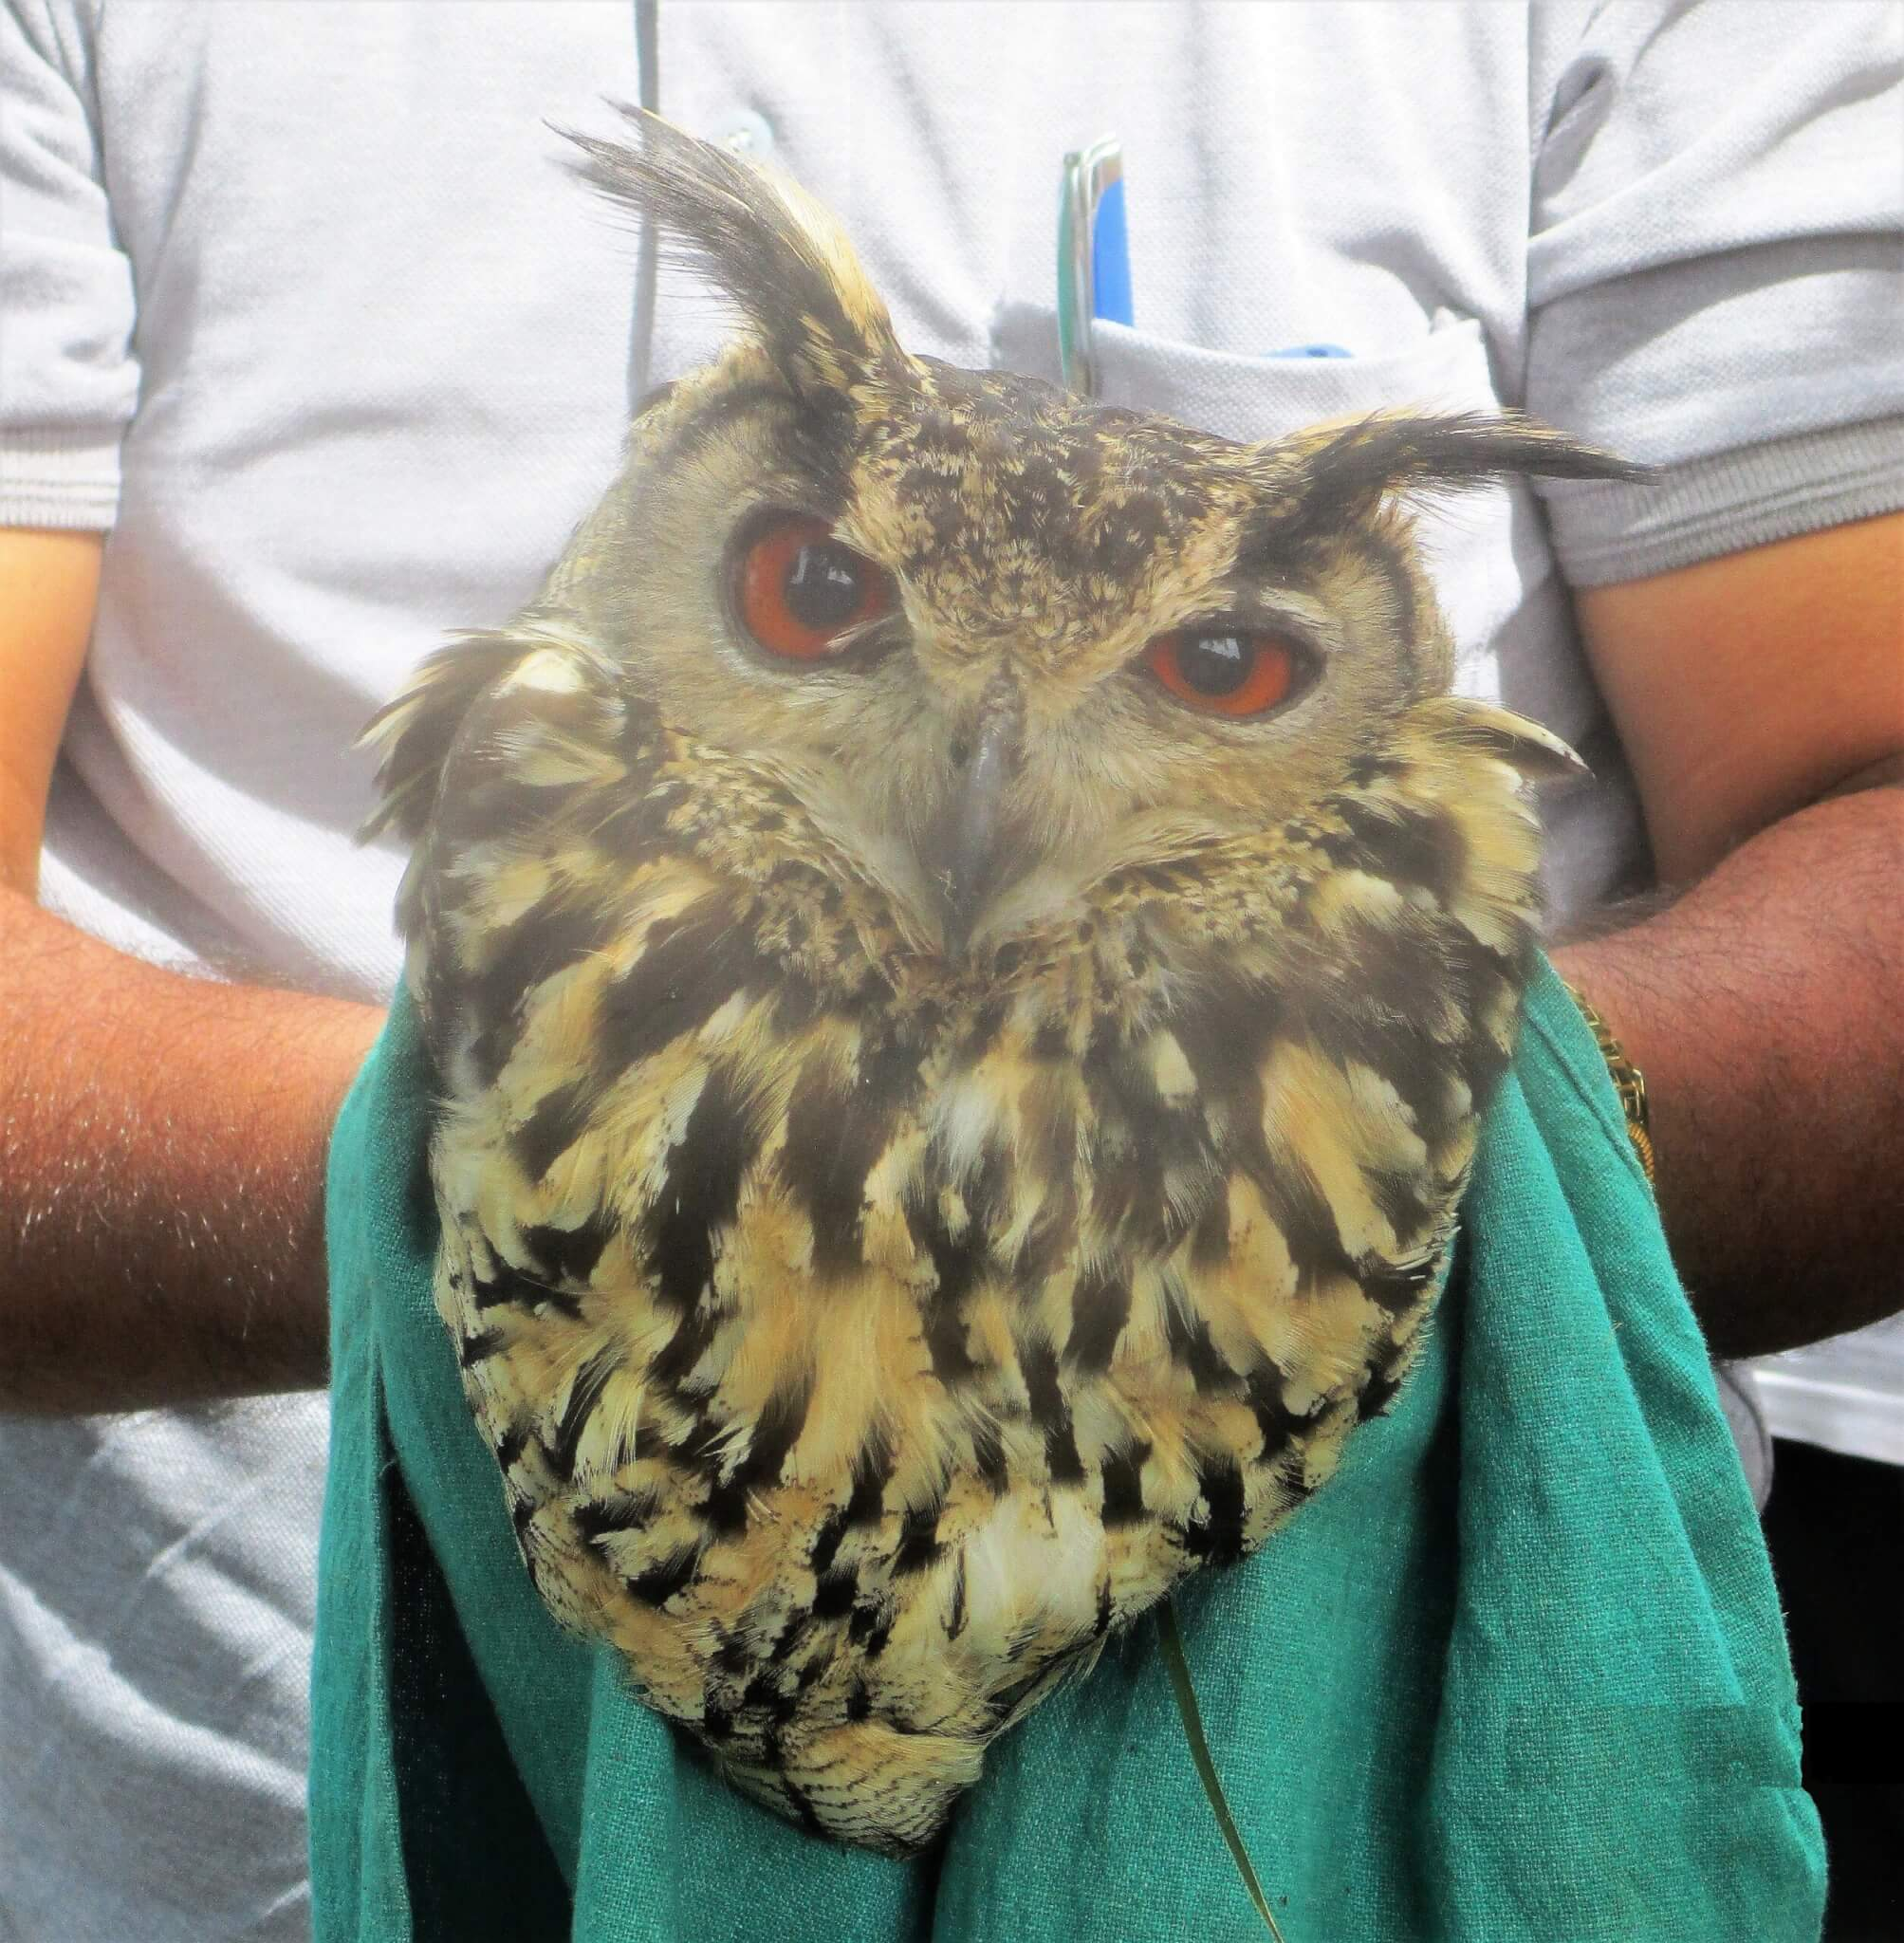 An Animal Rahat staff member holds this gentle, flightless owl as he's examined for injuries.